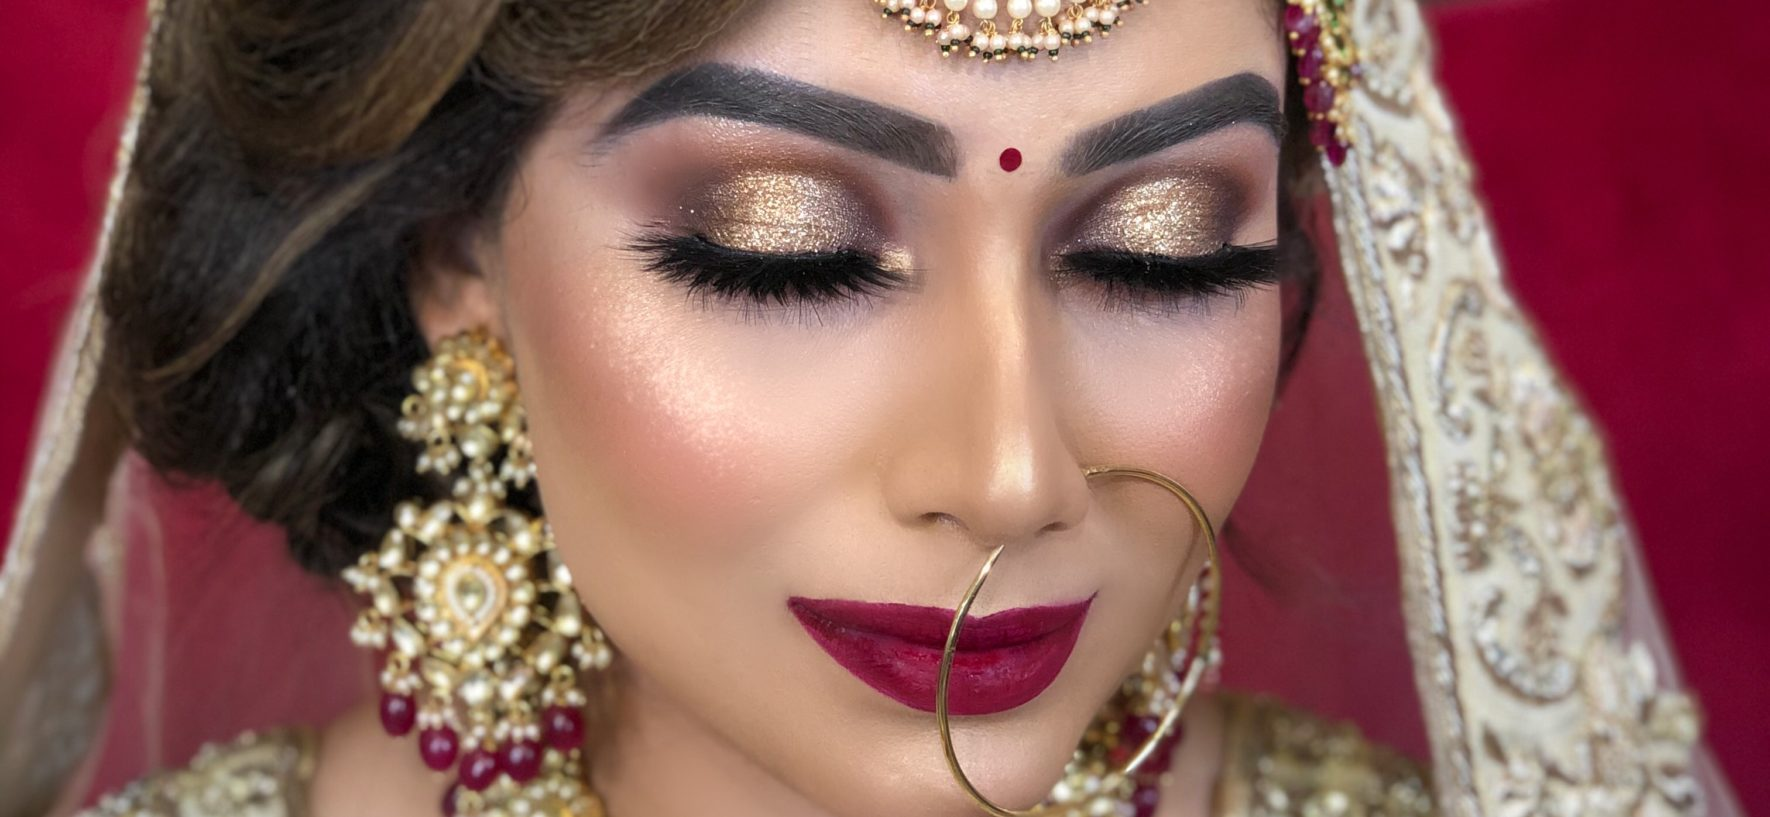 Four Tips For Hiring The Best Makeup Artist On Your Wedding